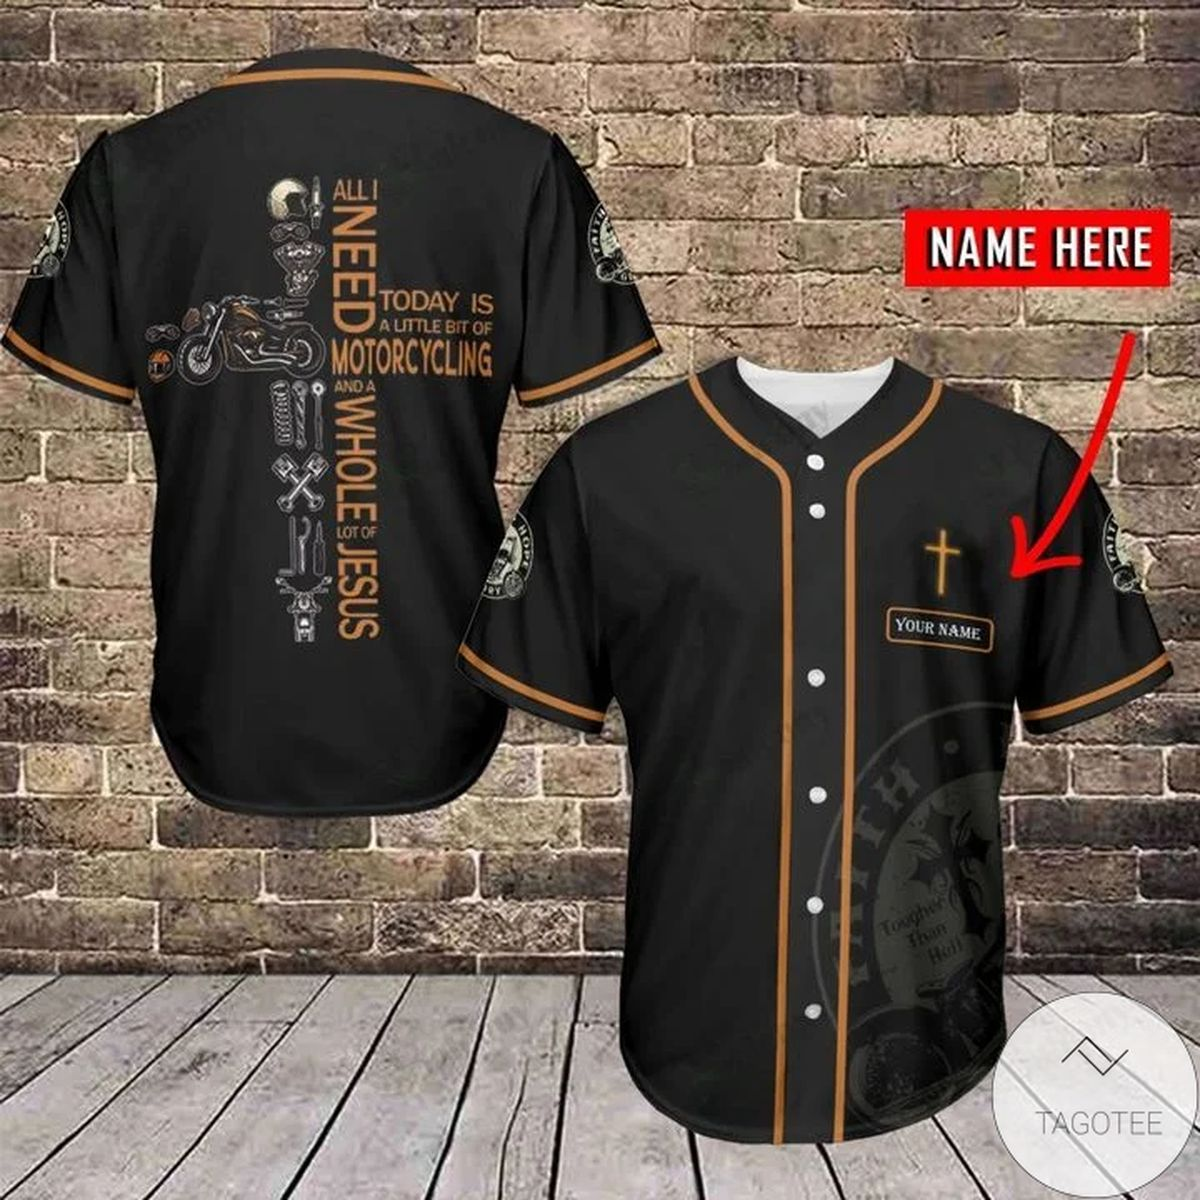 Personalized Jesus All I Need Today Is A Little Bit Of Motorcycling Baseball Jersey